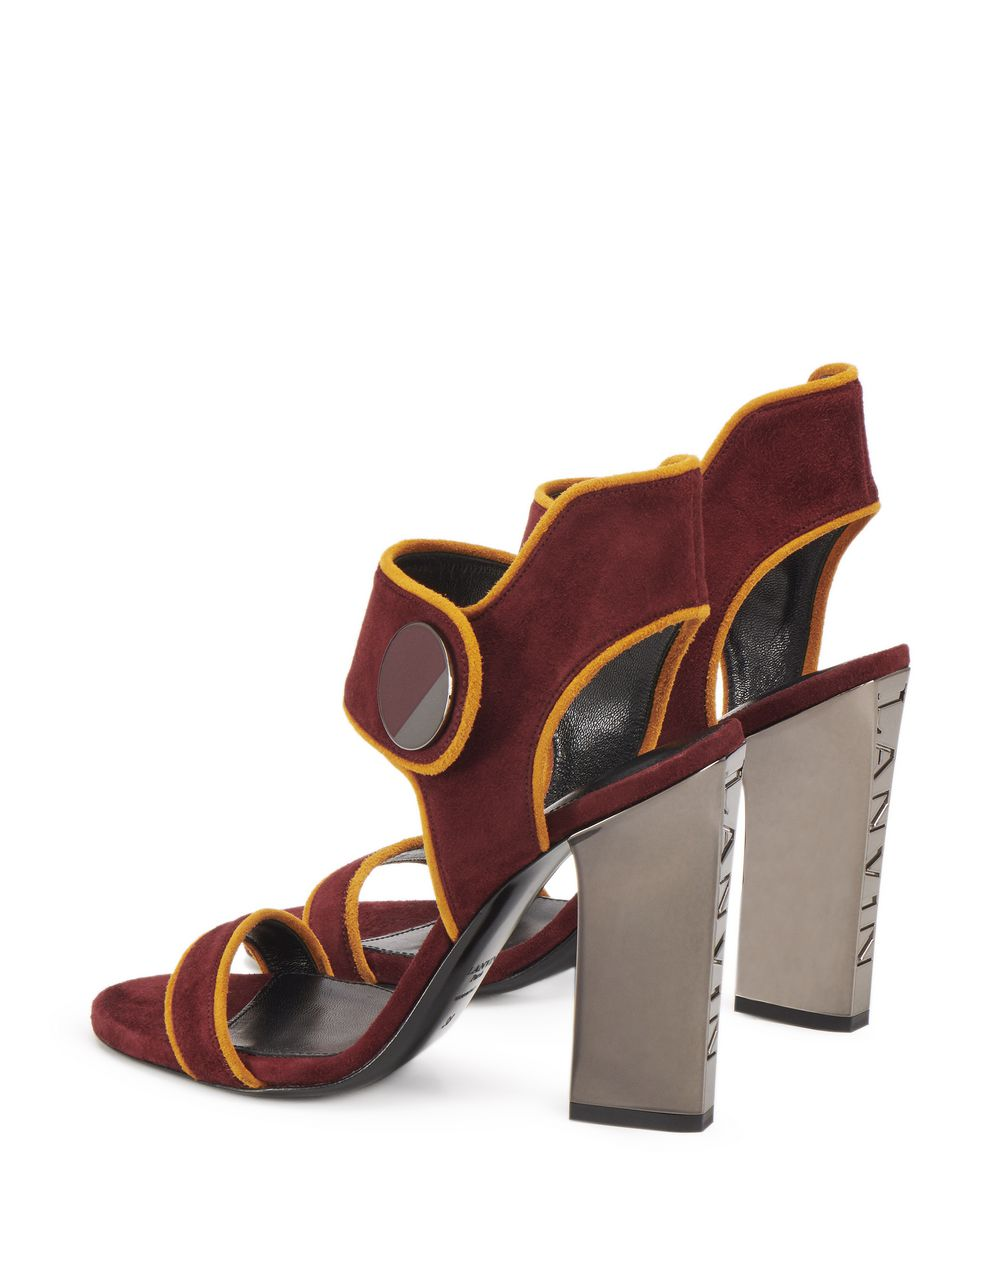 """NEW ELLIPTIQUE"" HIGH-HEELED SANDAL - Lanvin"